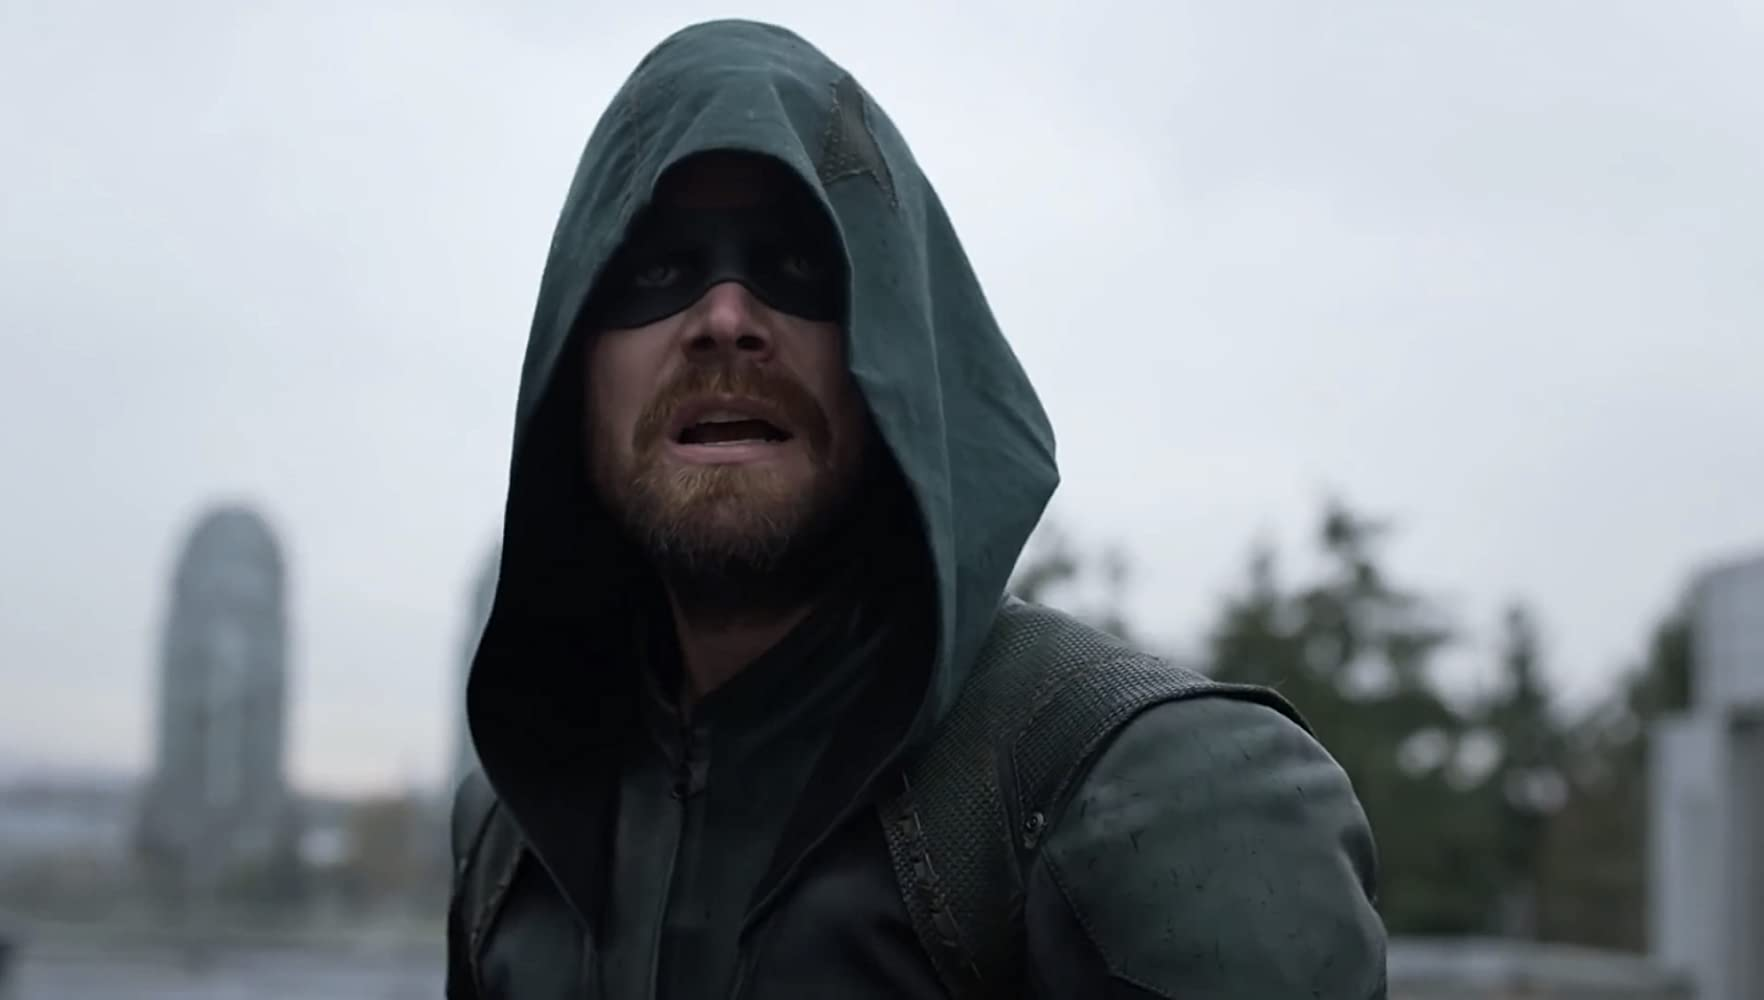 Stephen Amell in Supergirl (2015)